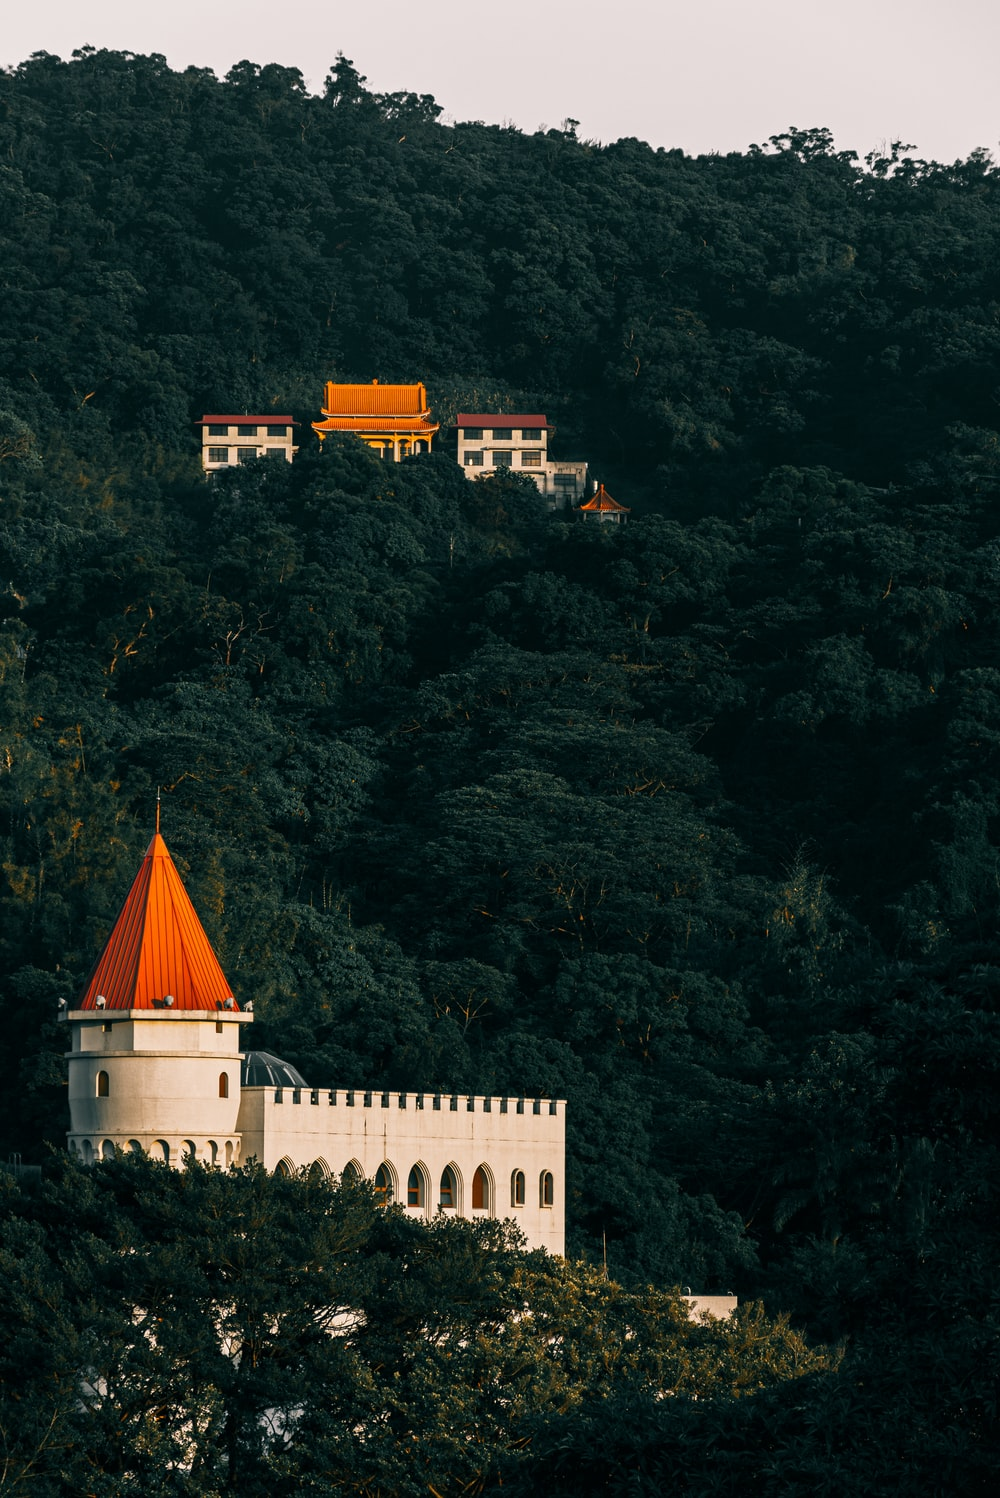 white and orange castle on hills